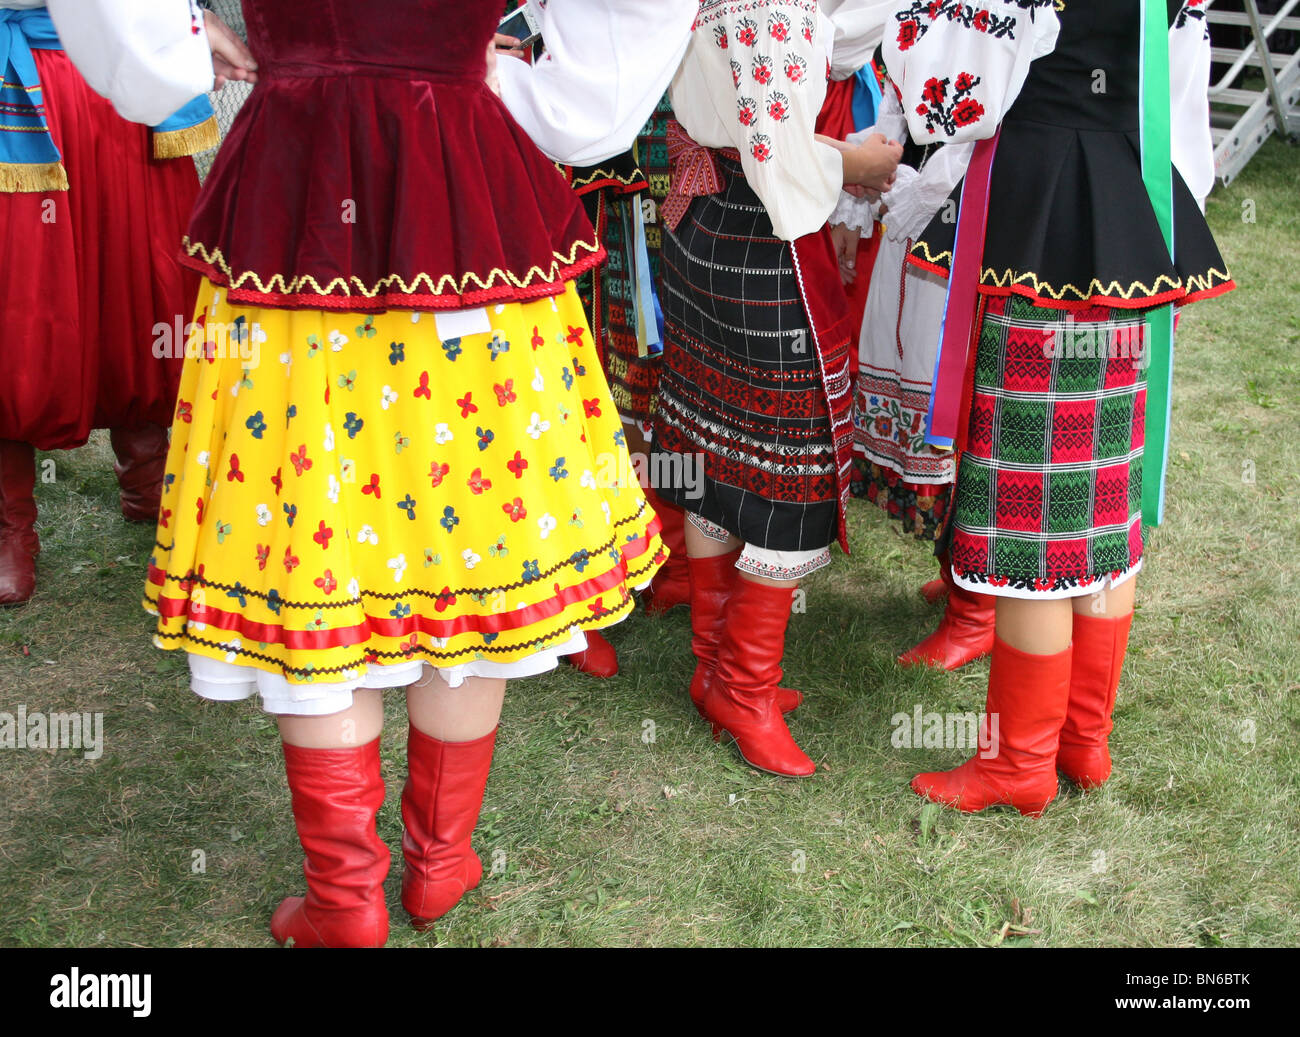 Ethnic skirts and Red boots - Stock Image